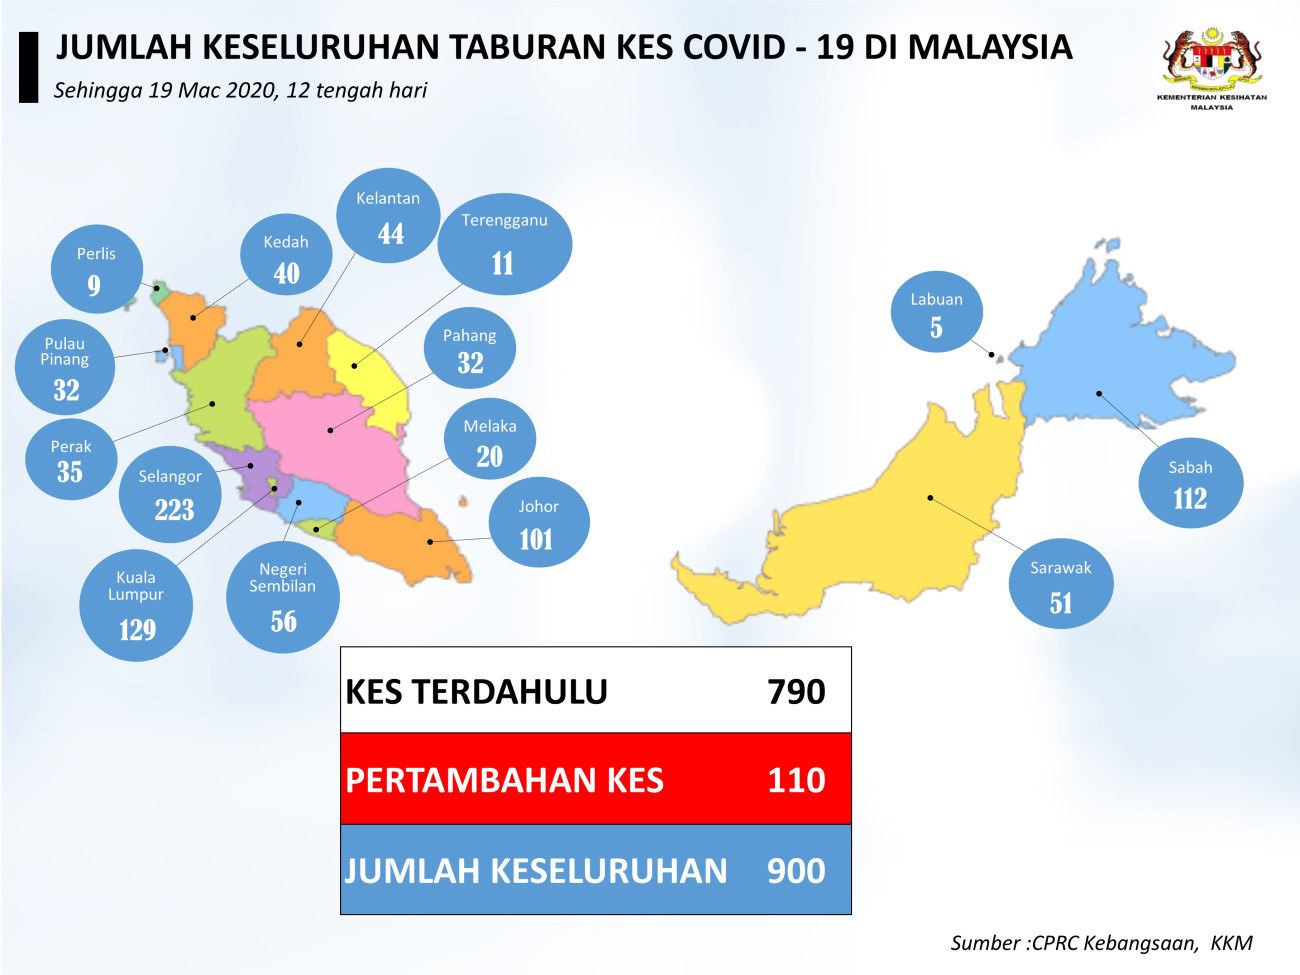 Malaysia Reports 110 Additional Covid 19 Cases Total Now 900 Outbreak News Today